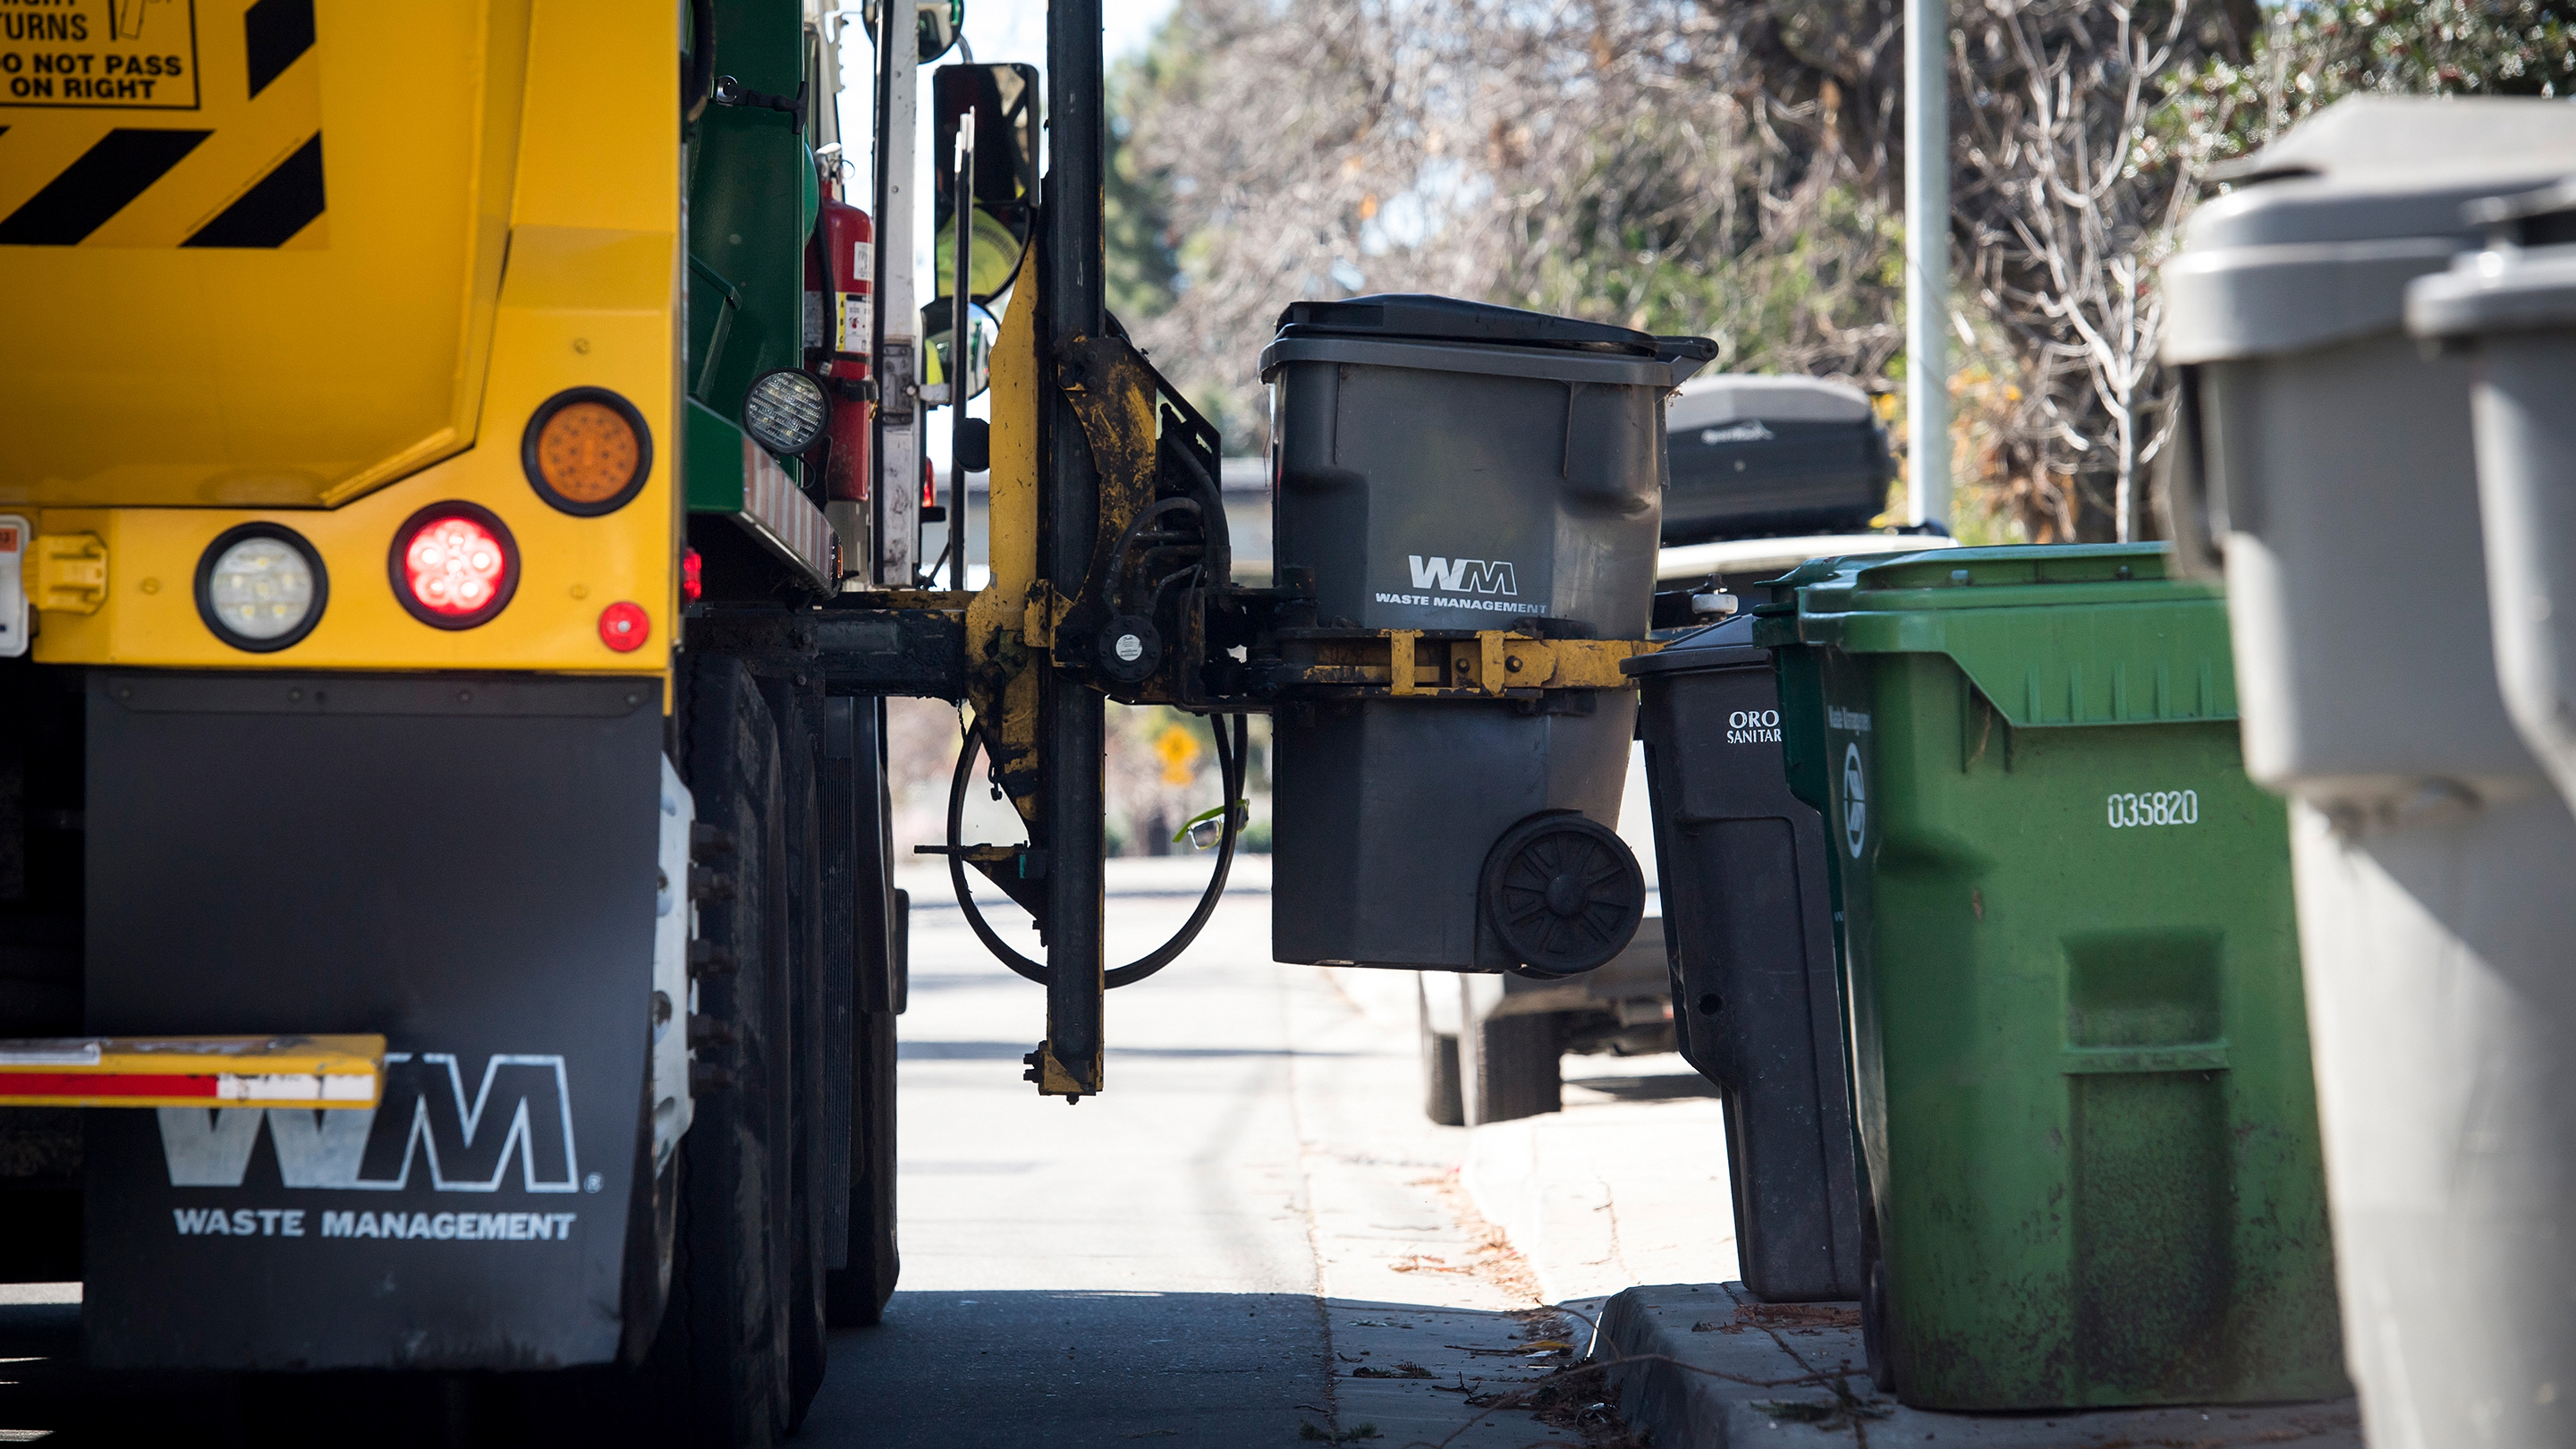 Waste Management Inc. Trash Pick Up Ahead Of Earnings Figures